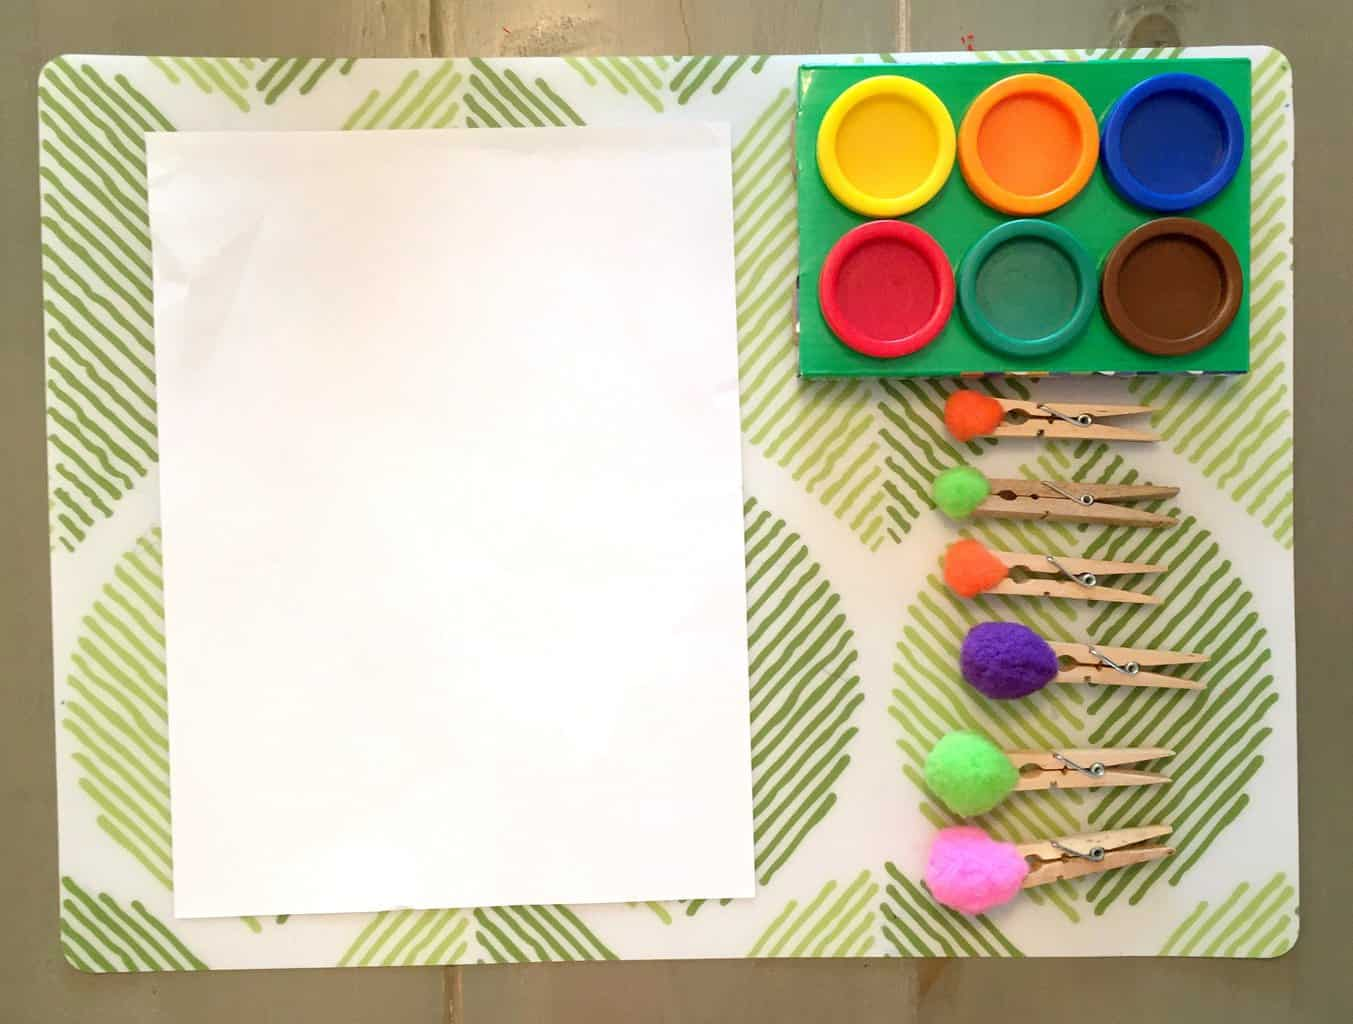 Materials: Pom poms, clothespins, paint, and construction paper